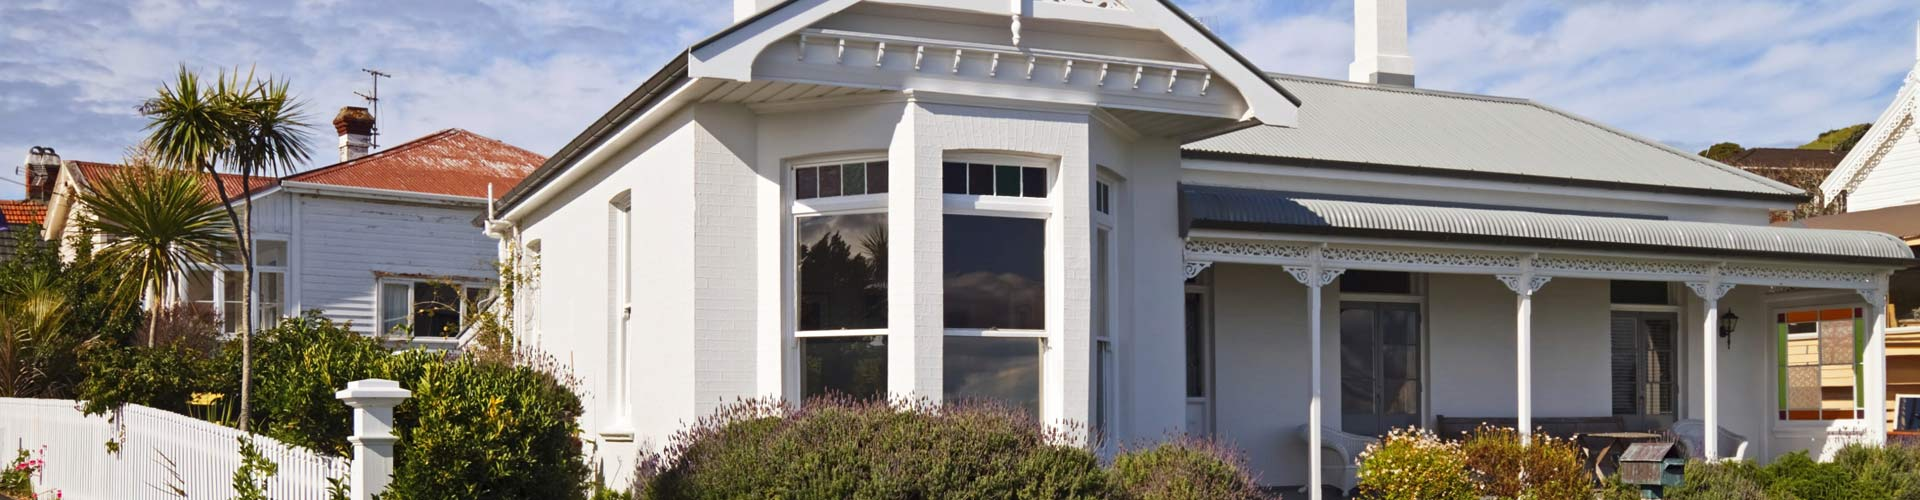 Builders   Queensland   Colonial Building CompanyLarge range of unique Queenslander and Colonial style house plans